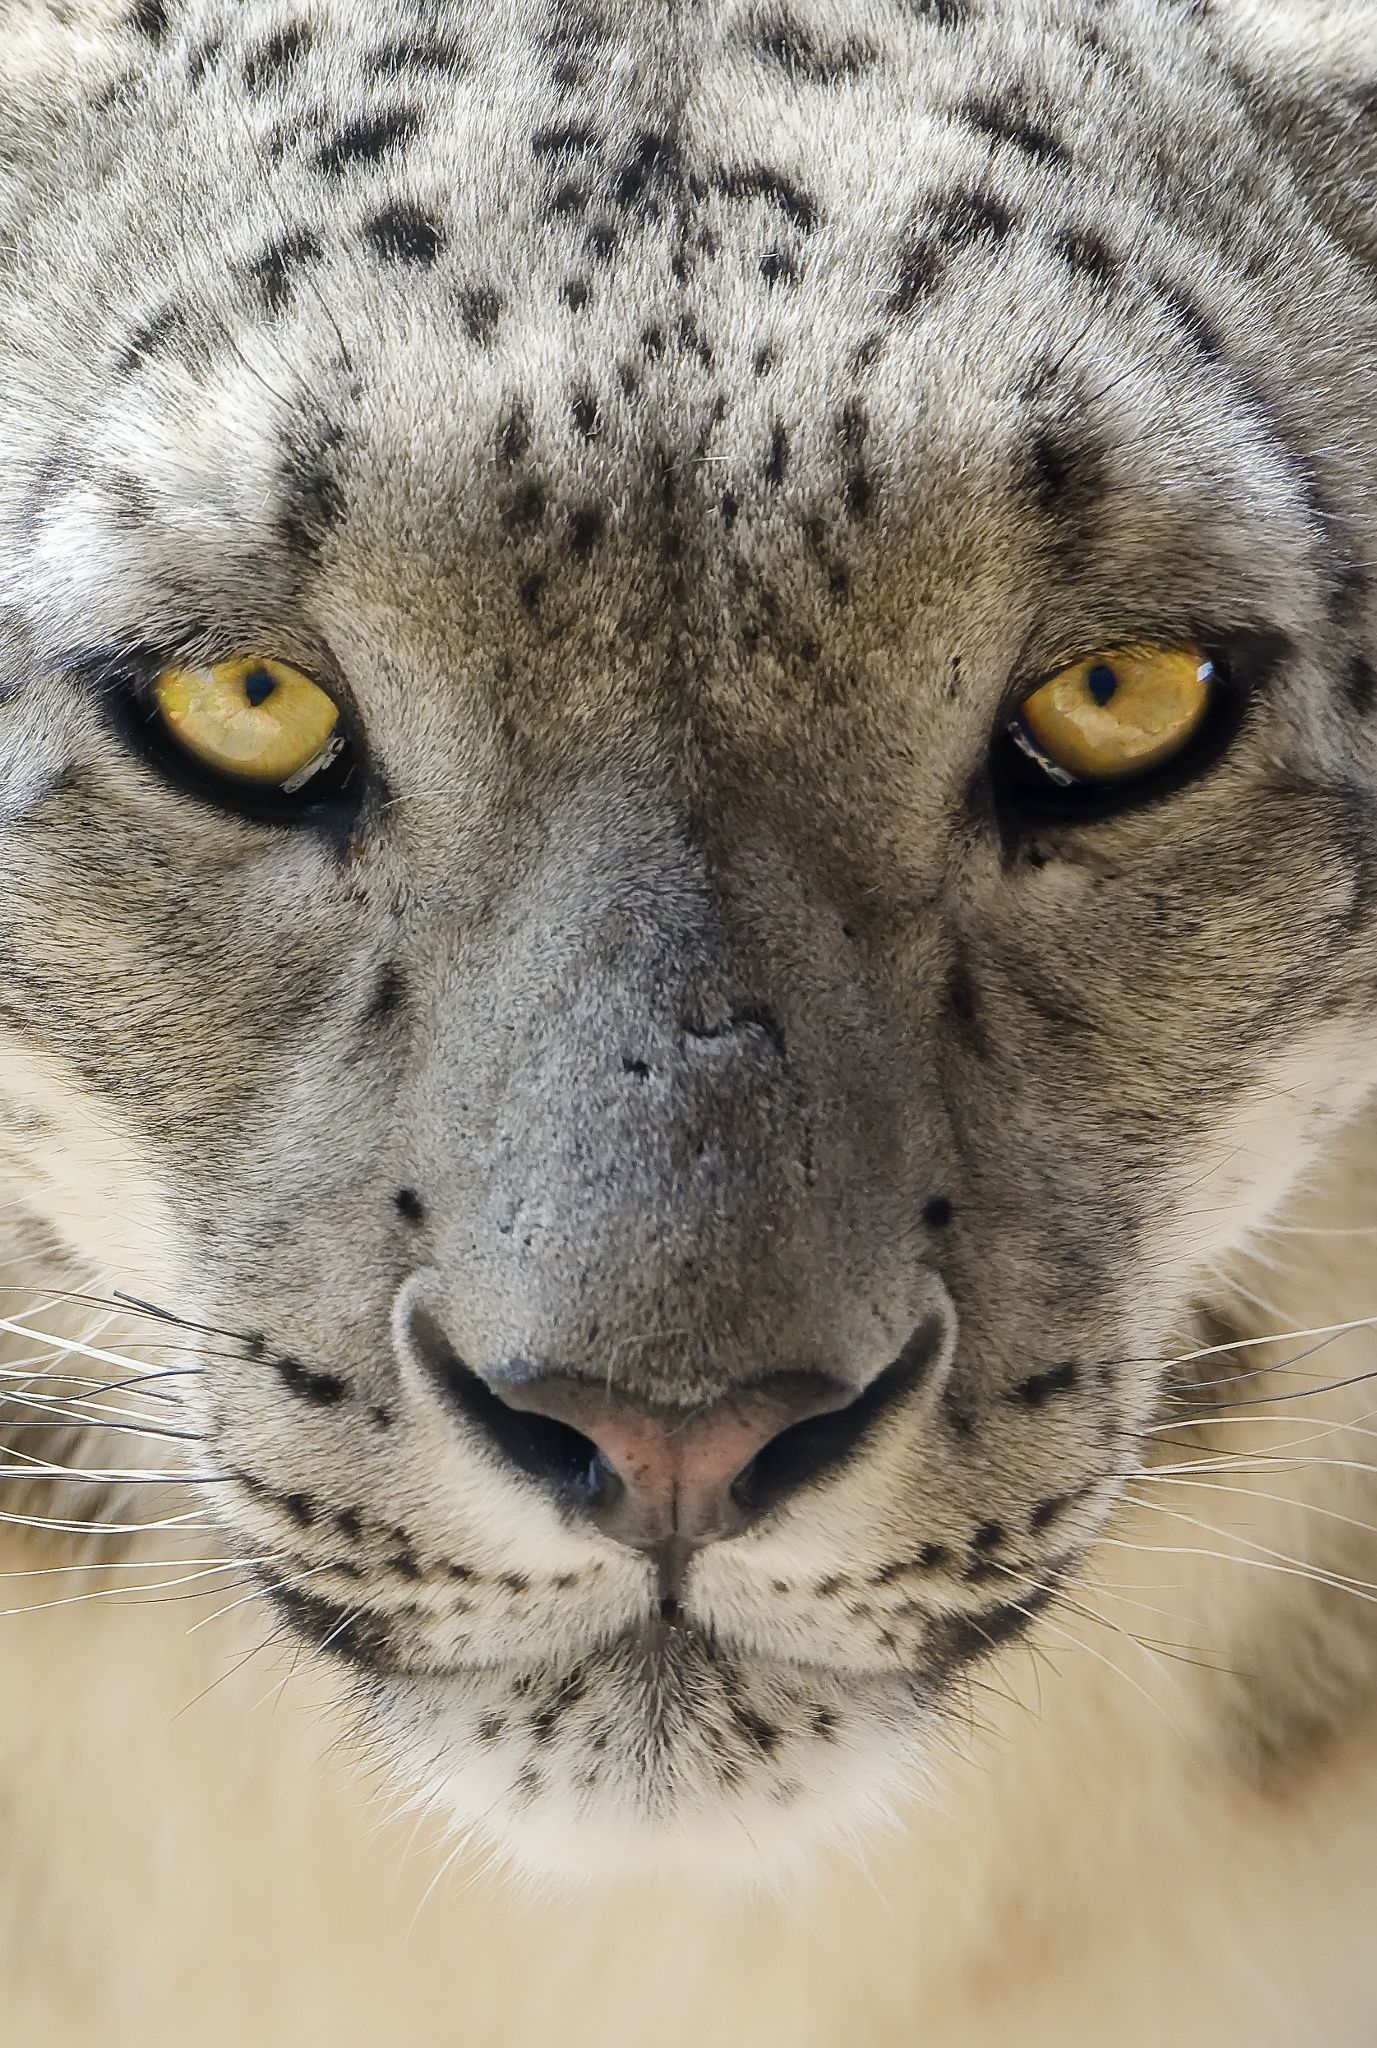 I See Your Soul. by Paul Shaw on 500px Big cats, Animals